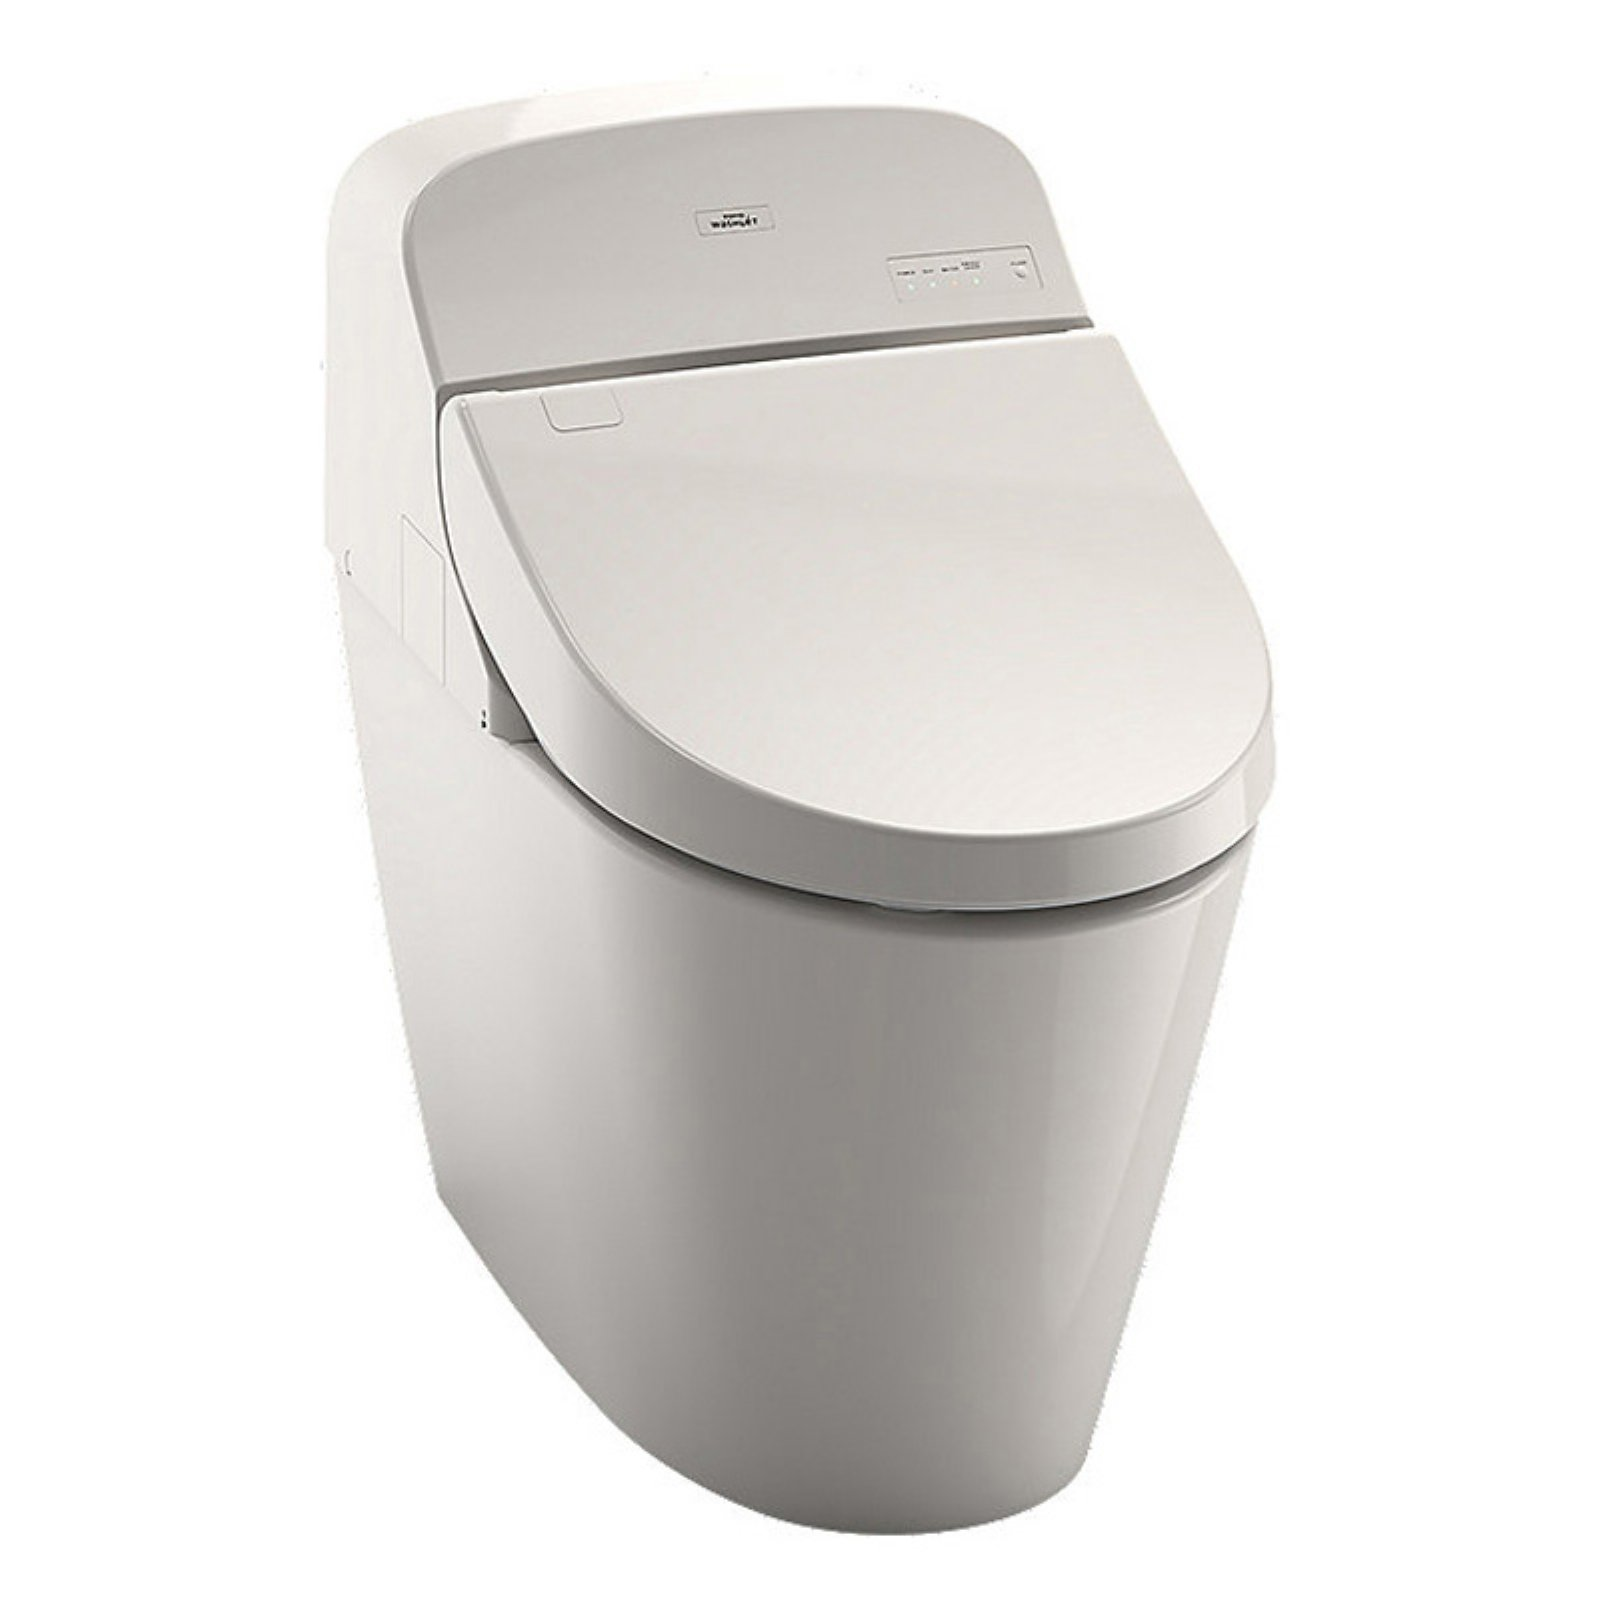 Toto G400 MS920CEMFG Elongated Toilet by Toto